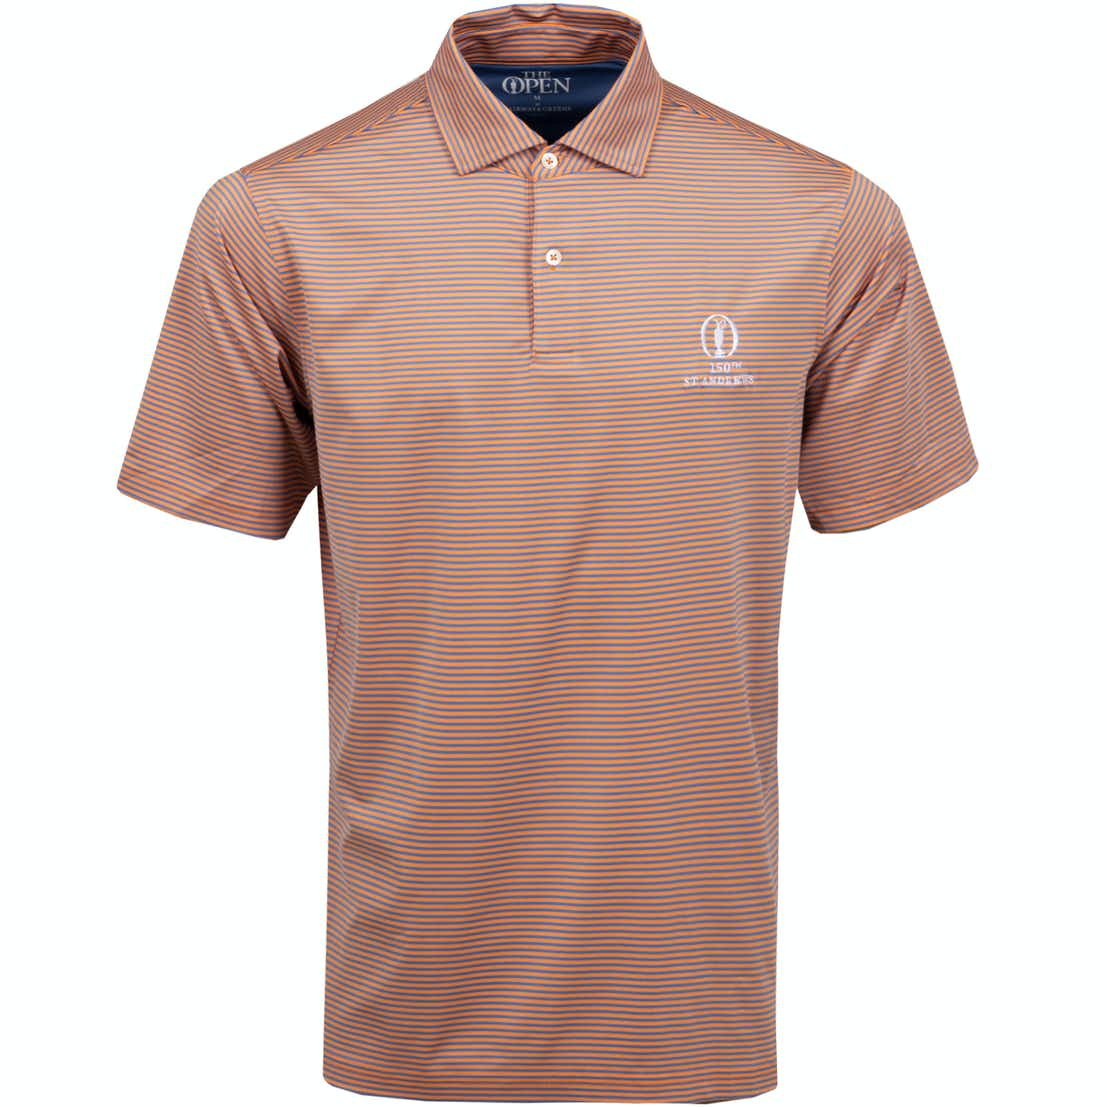 150th St Andrews Striped Polo Shirt - Orange and Blue